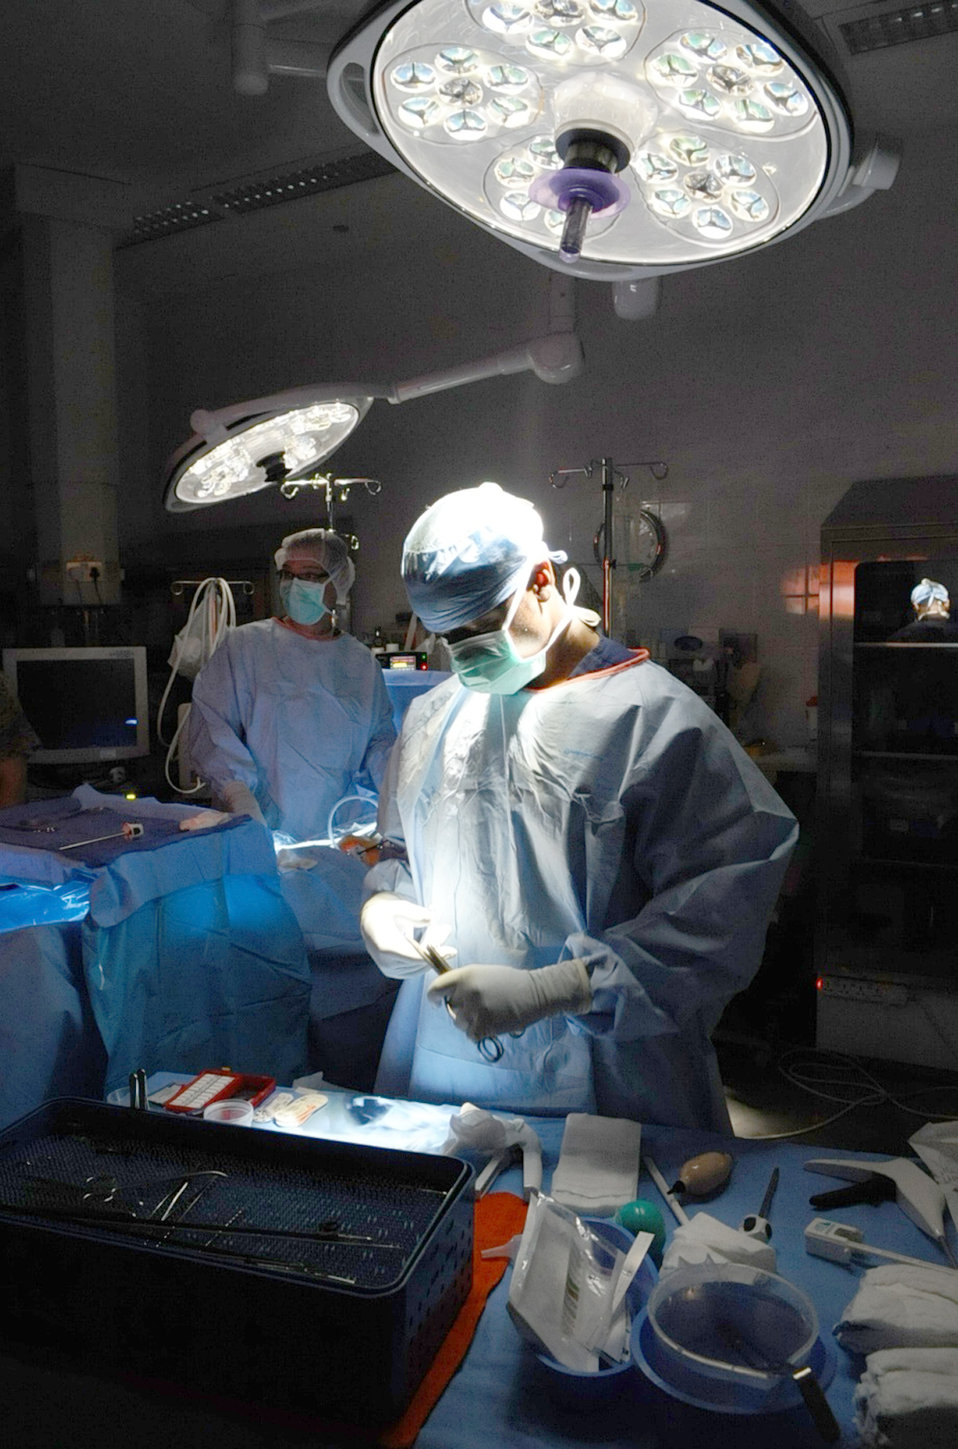 In-theater medcal treatment